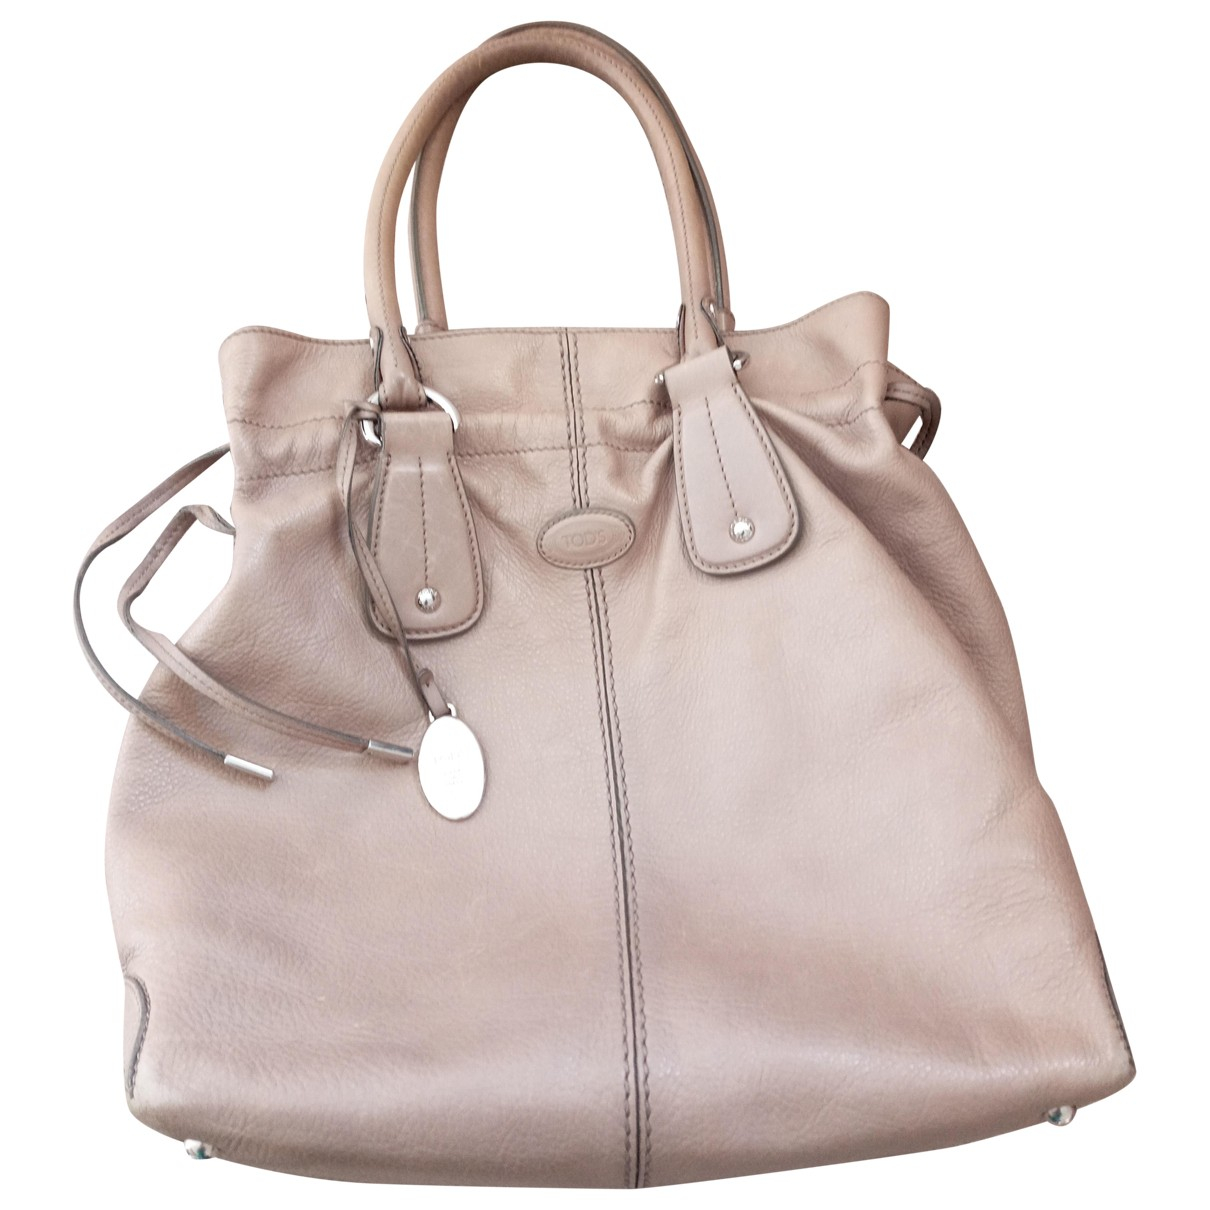 Tods \N Beige Leather handbag for Women \N